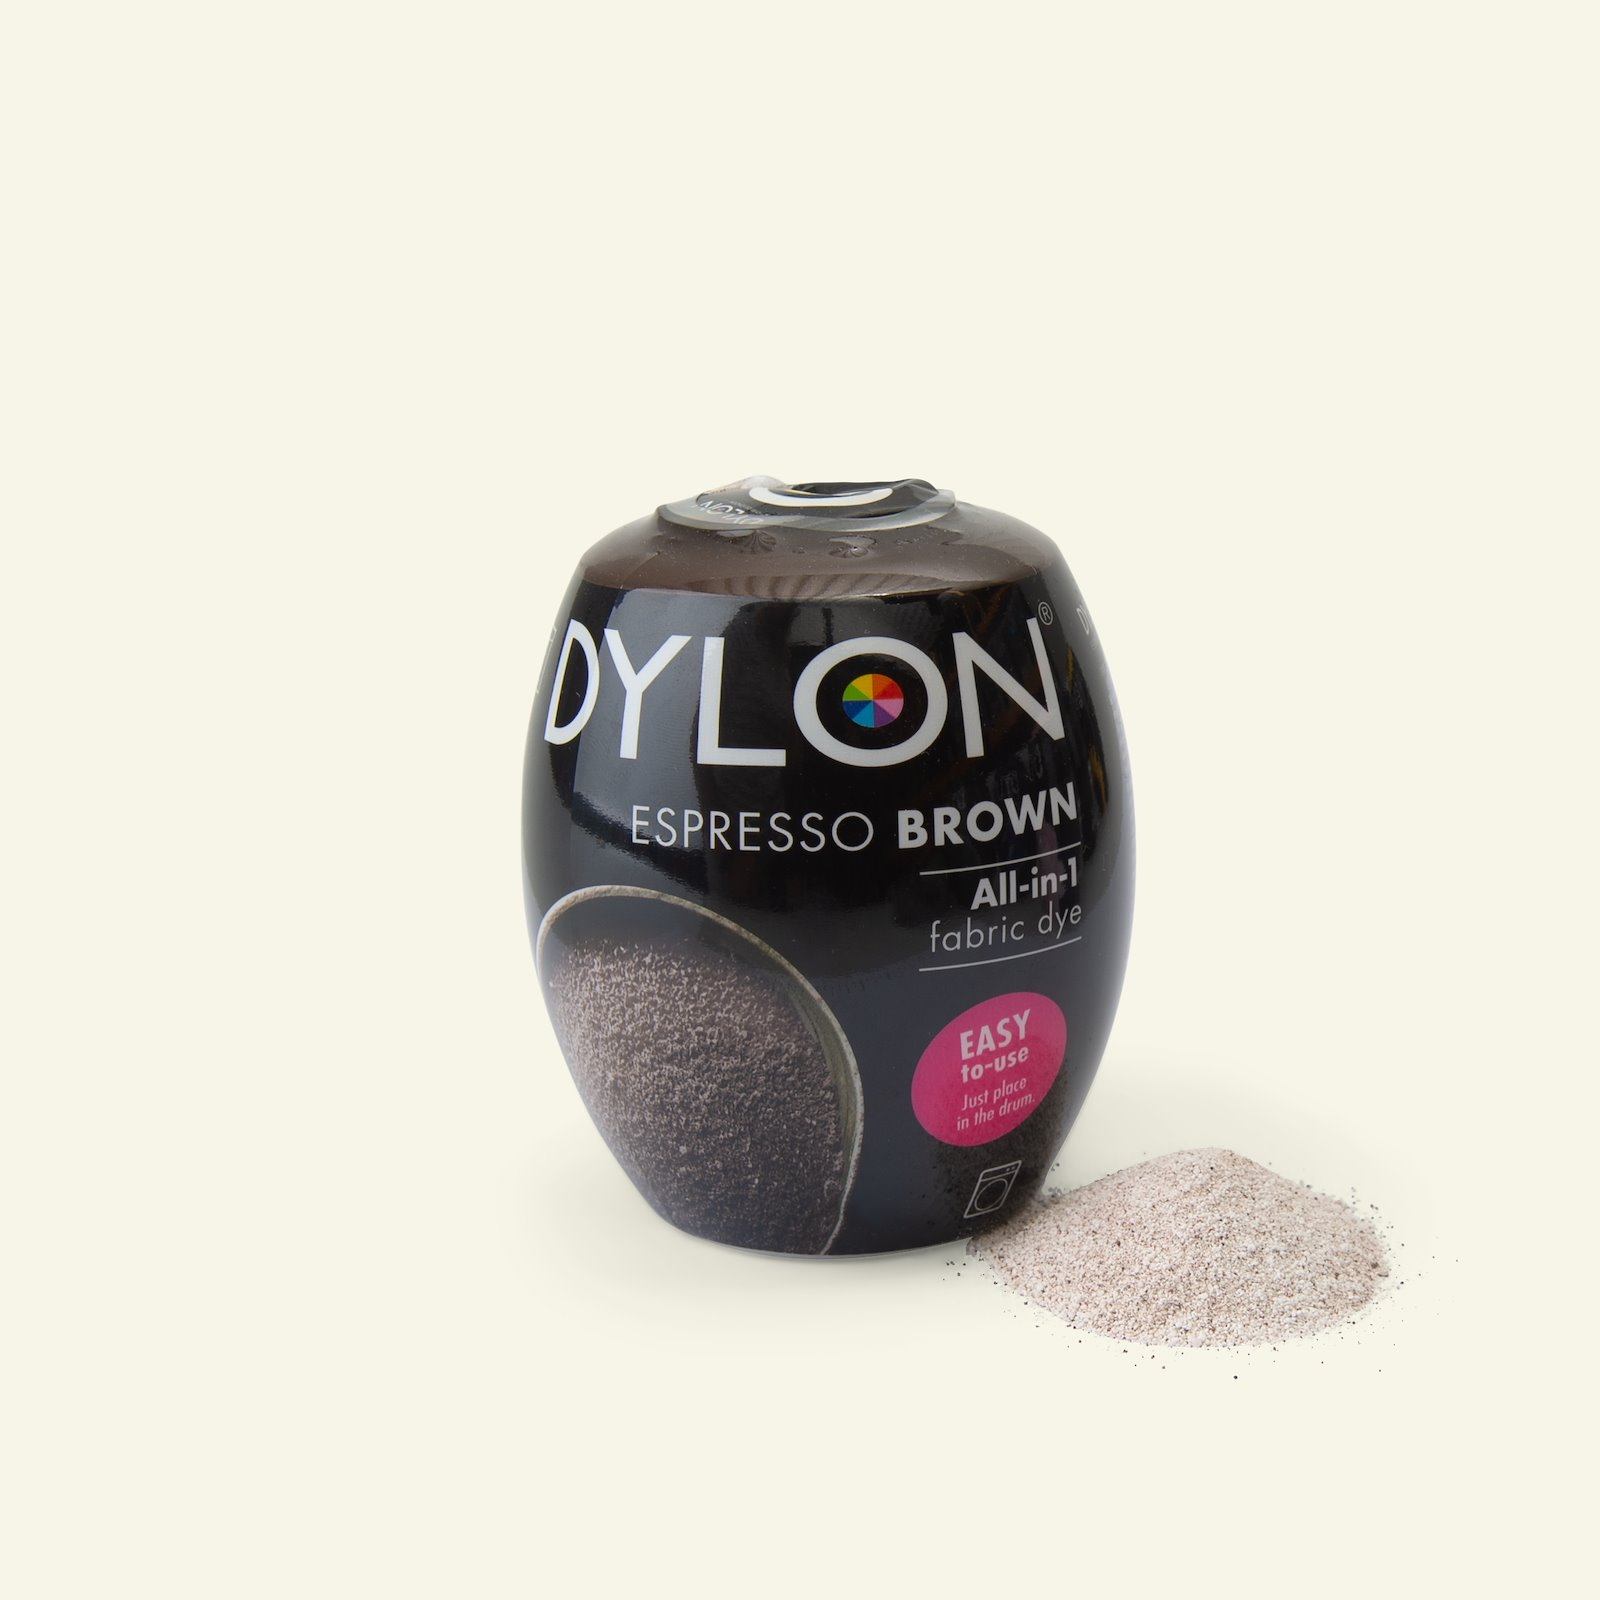 Dylon fabric dye for machine brown 29705_pack